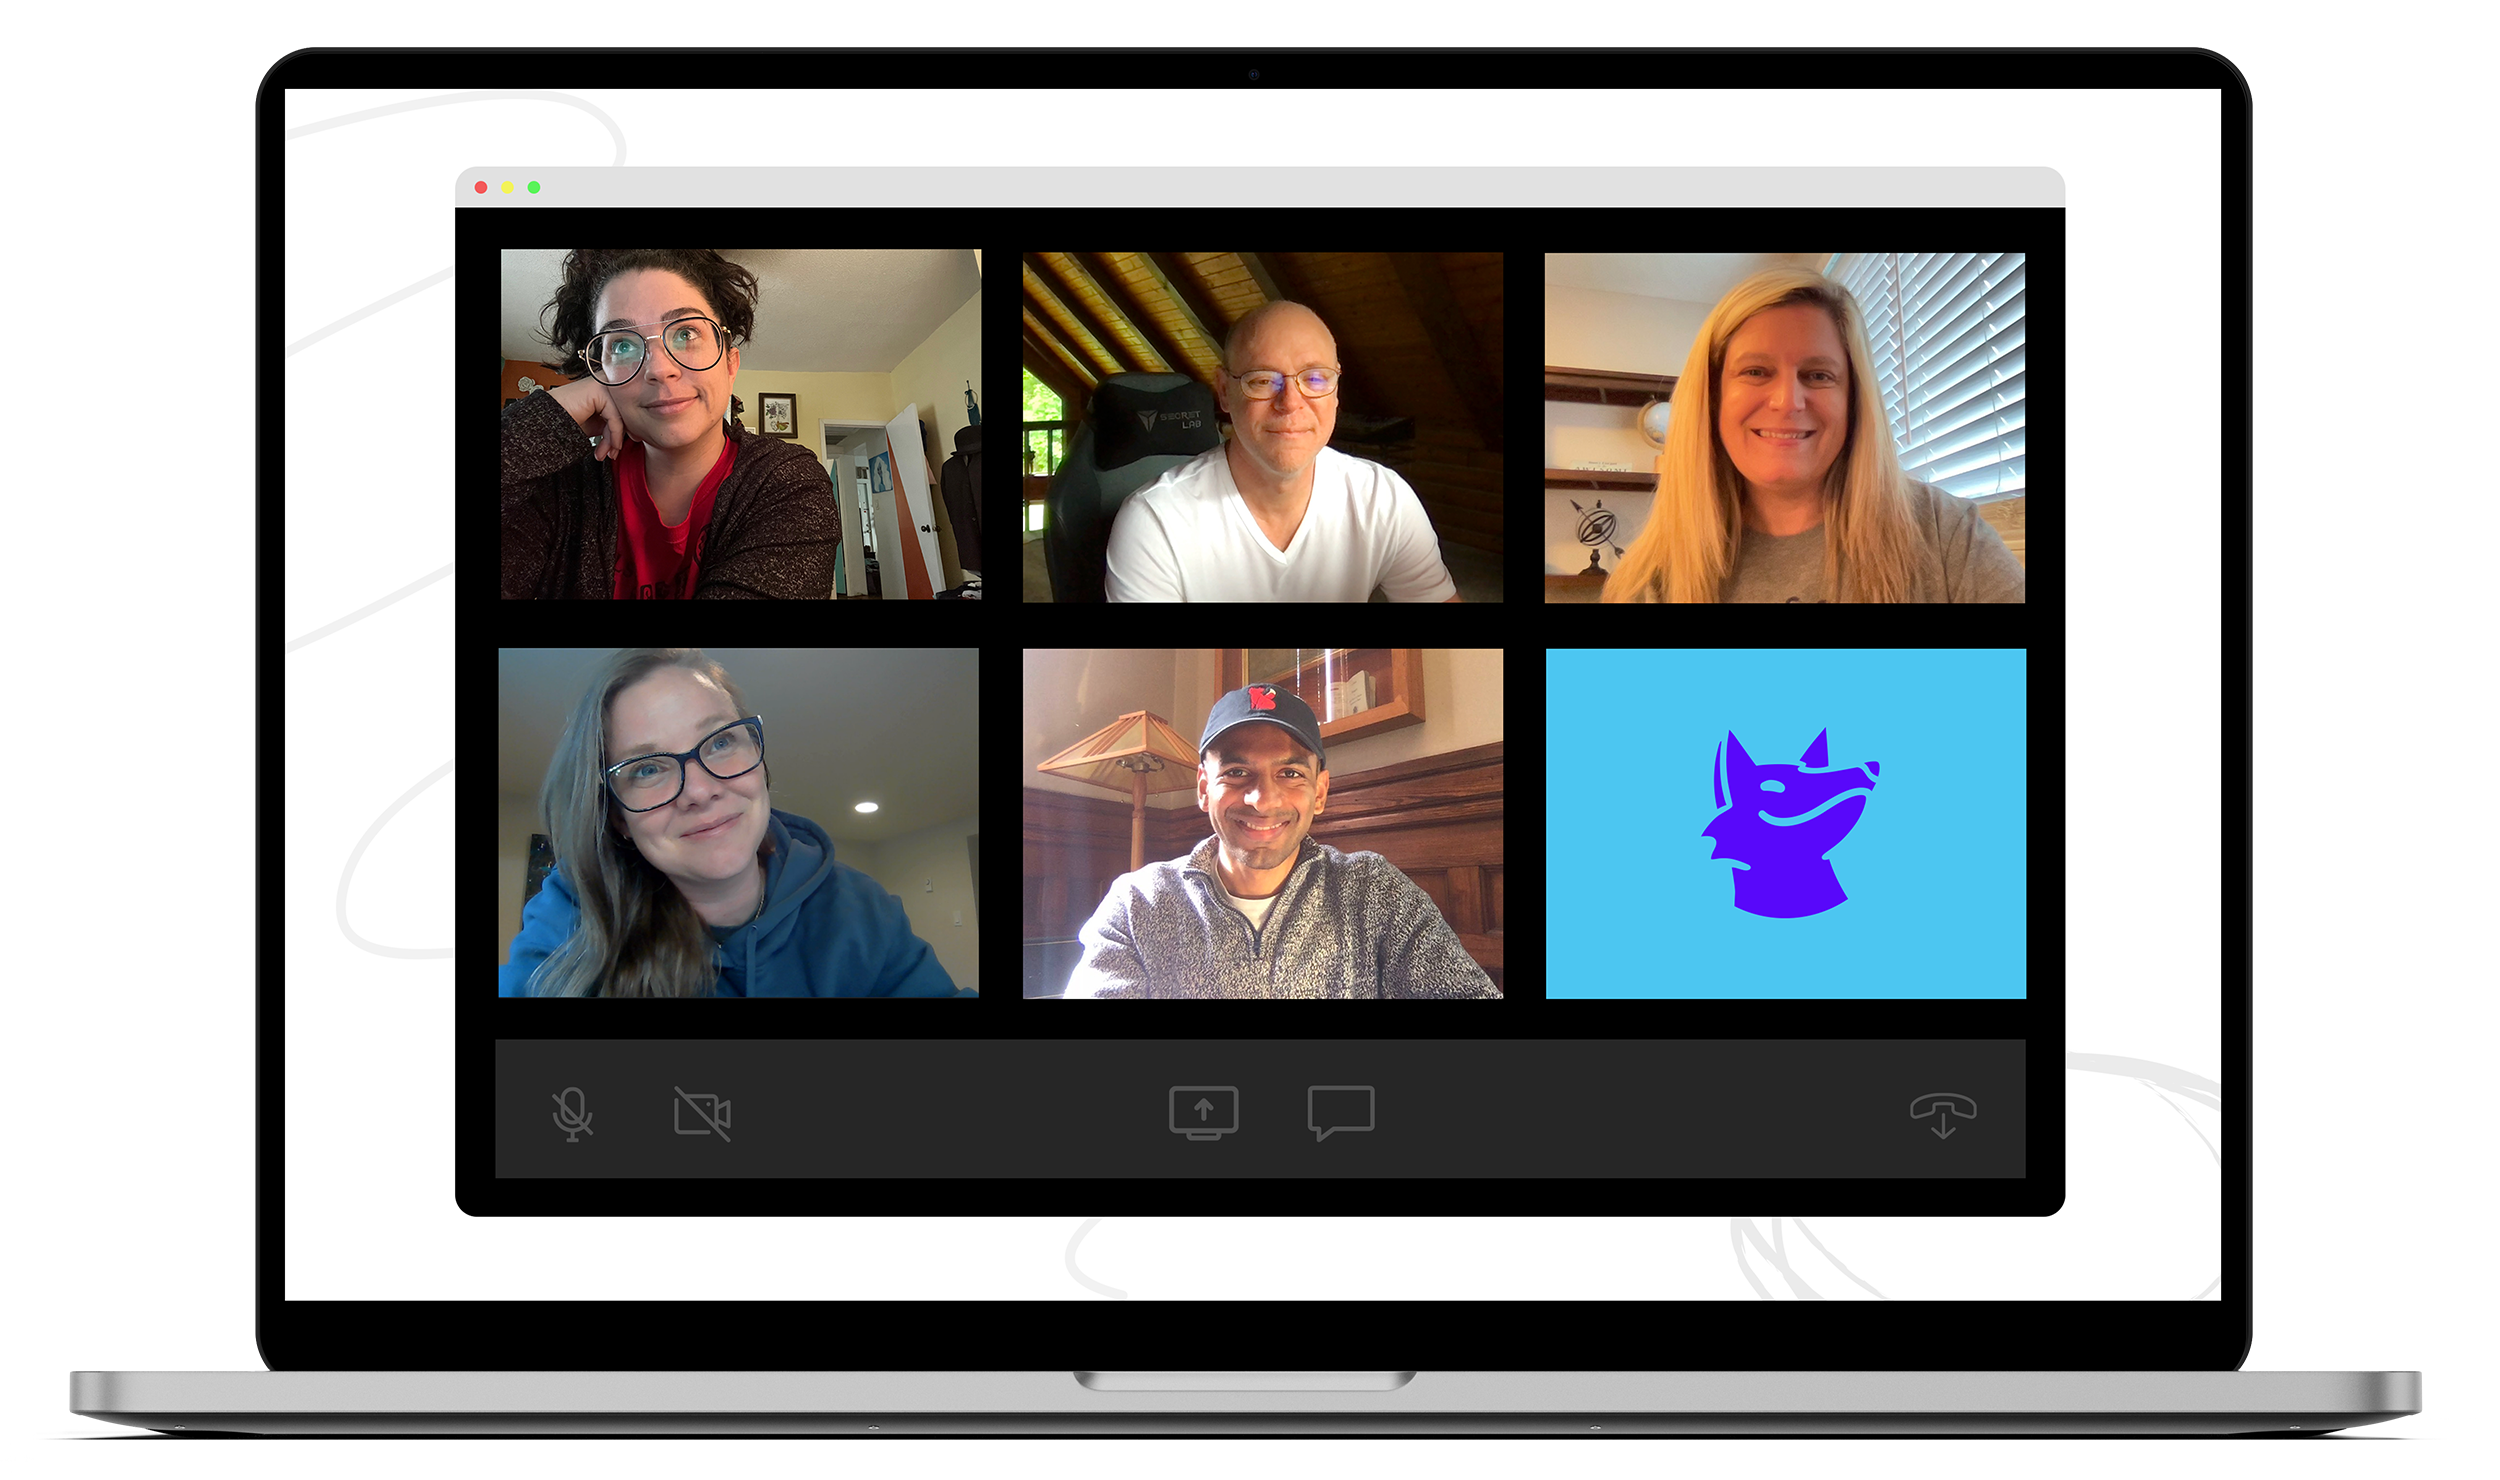 A laptop showing participants on a video call